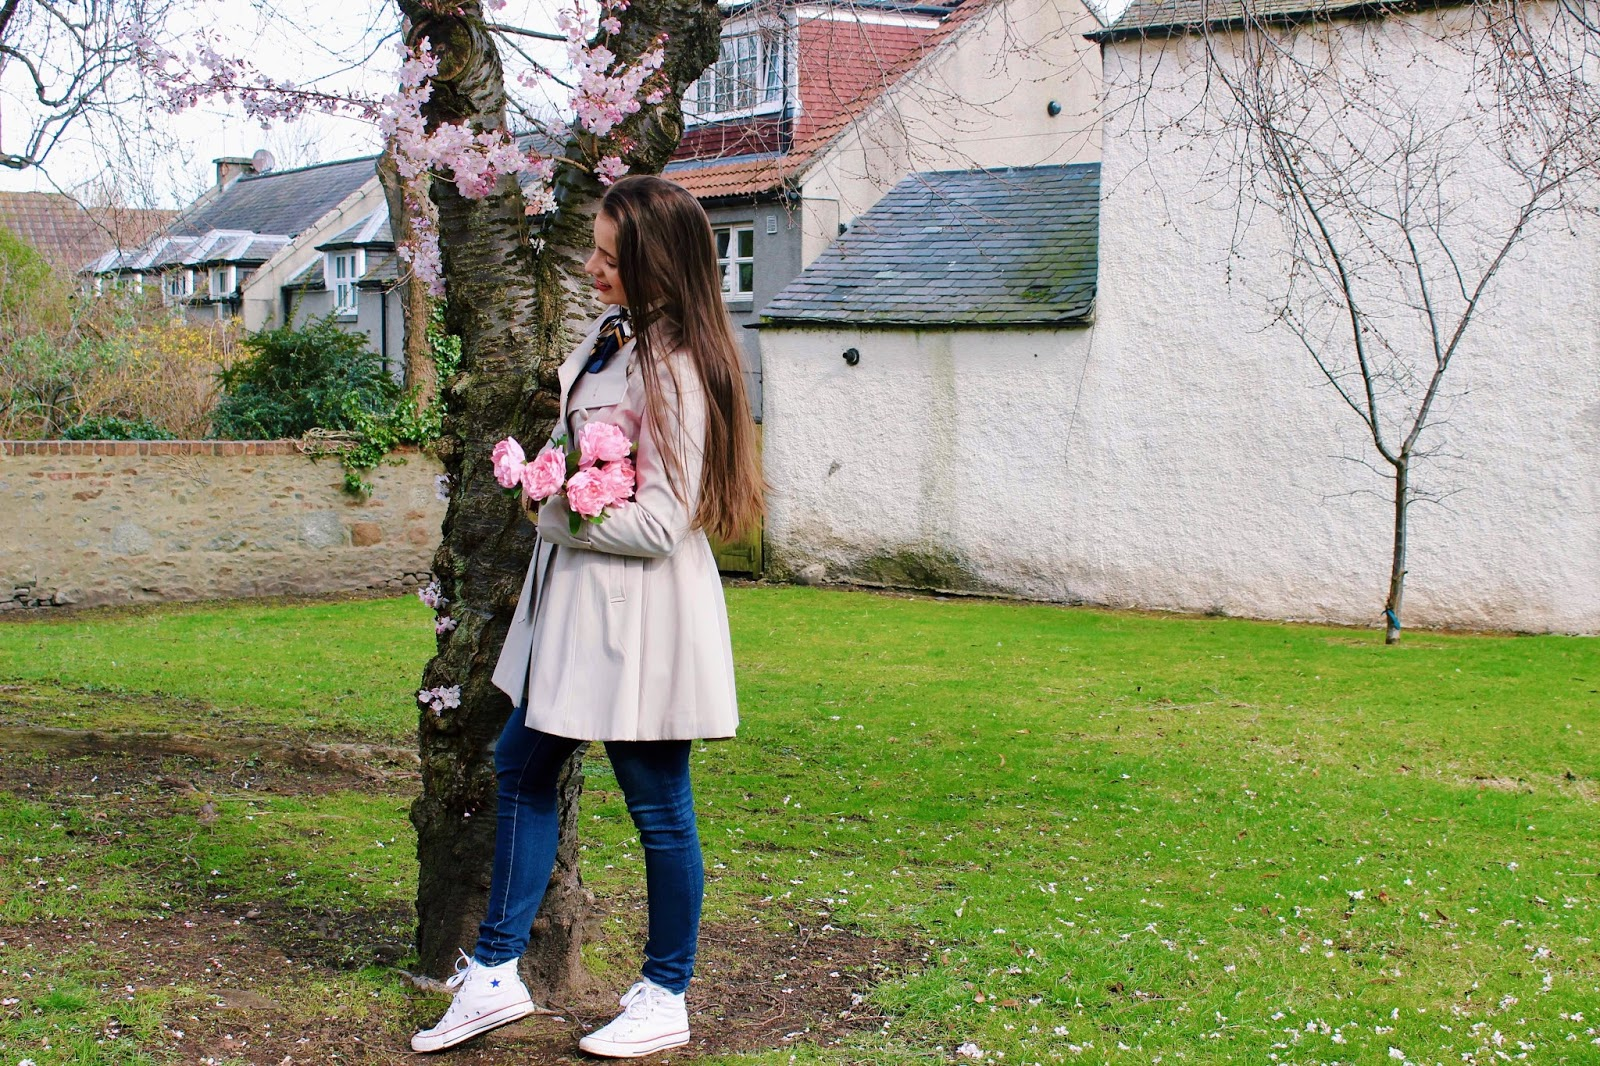 Girl under cherry blossom tree with flowers